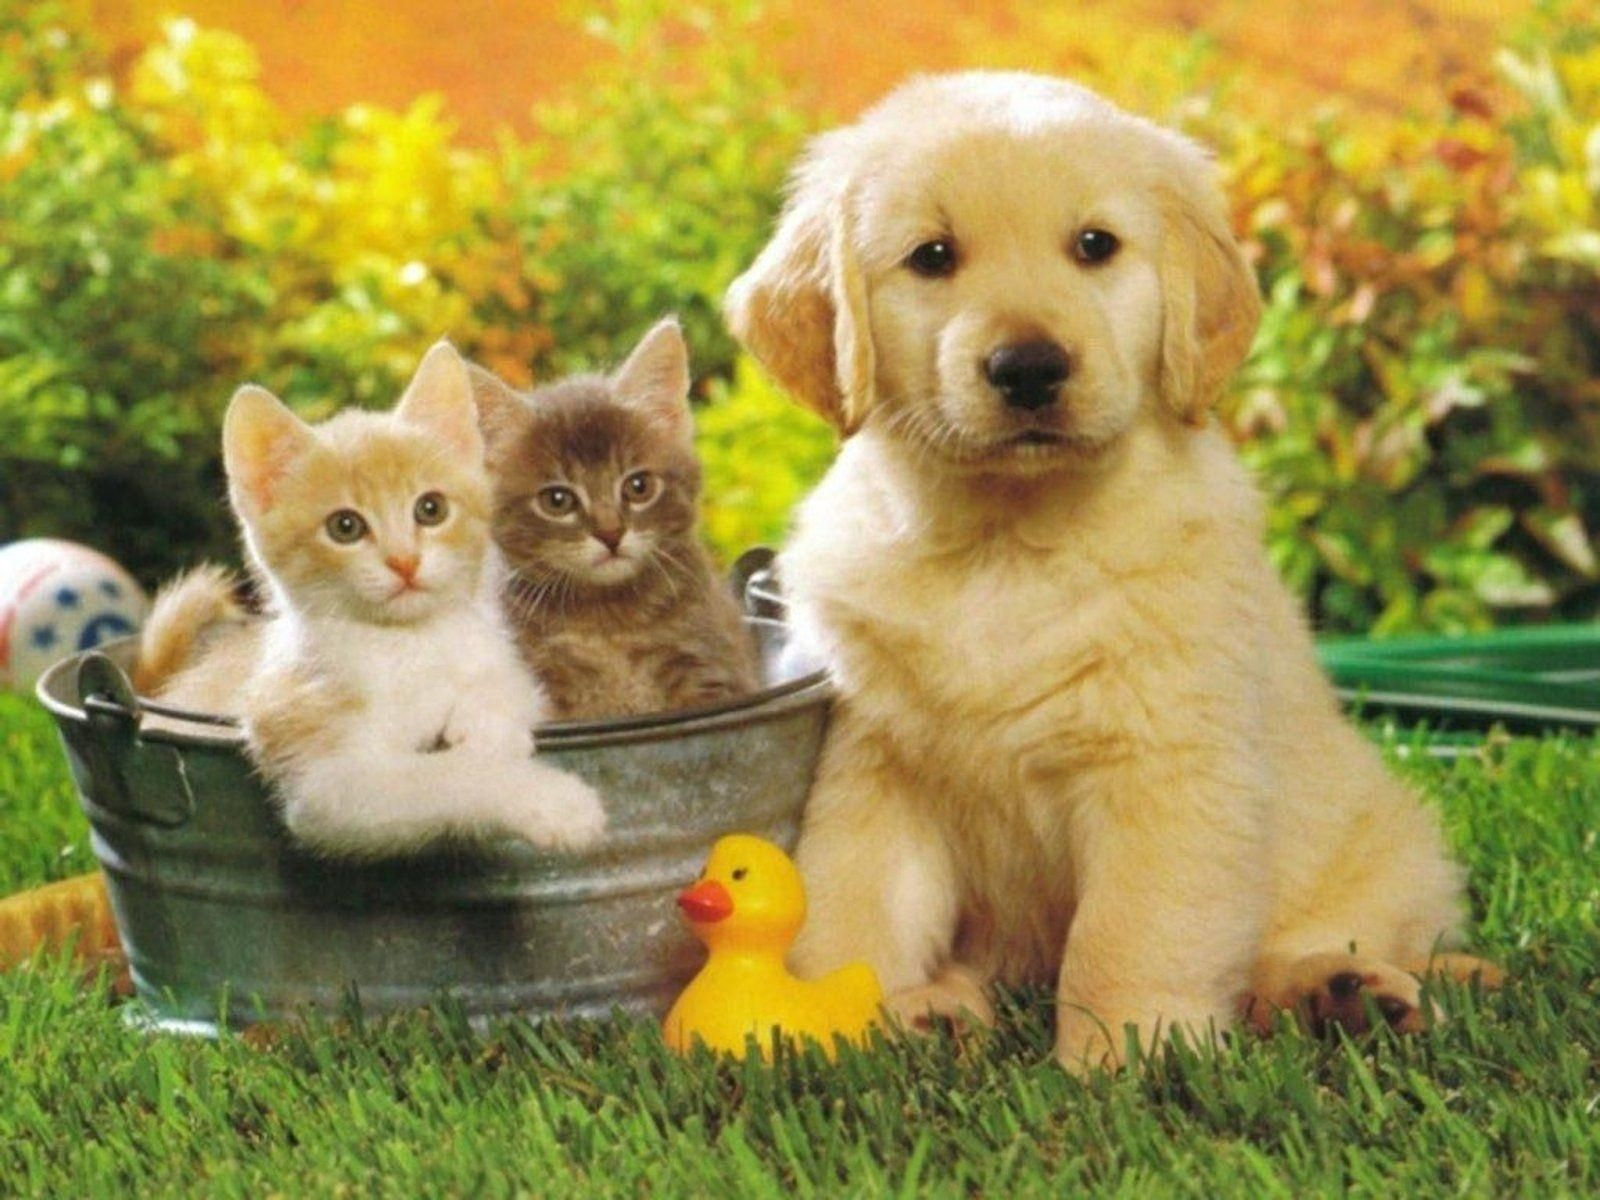 10 Best Kittens And Puppies Wallpapers Full Hd 1920 1080 For Pc Desktop Cute Puppies And Kittens Cute Cats And Dogs Kittens And Puppies